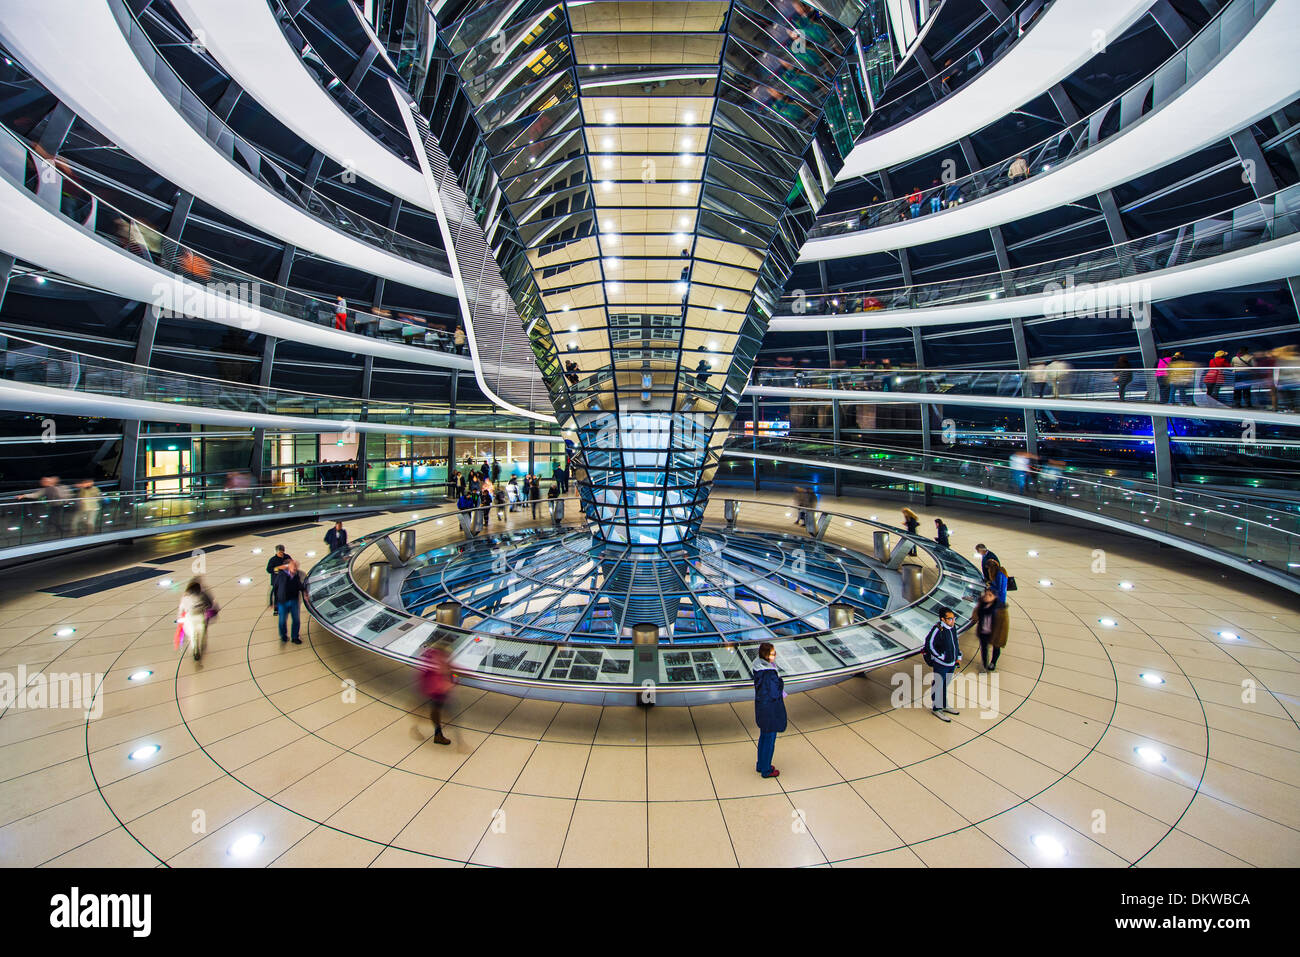 Reichstag Glass Dome in Berlin, Germany. - Stock Image